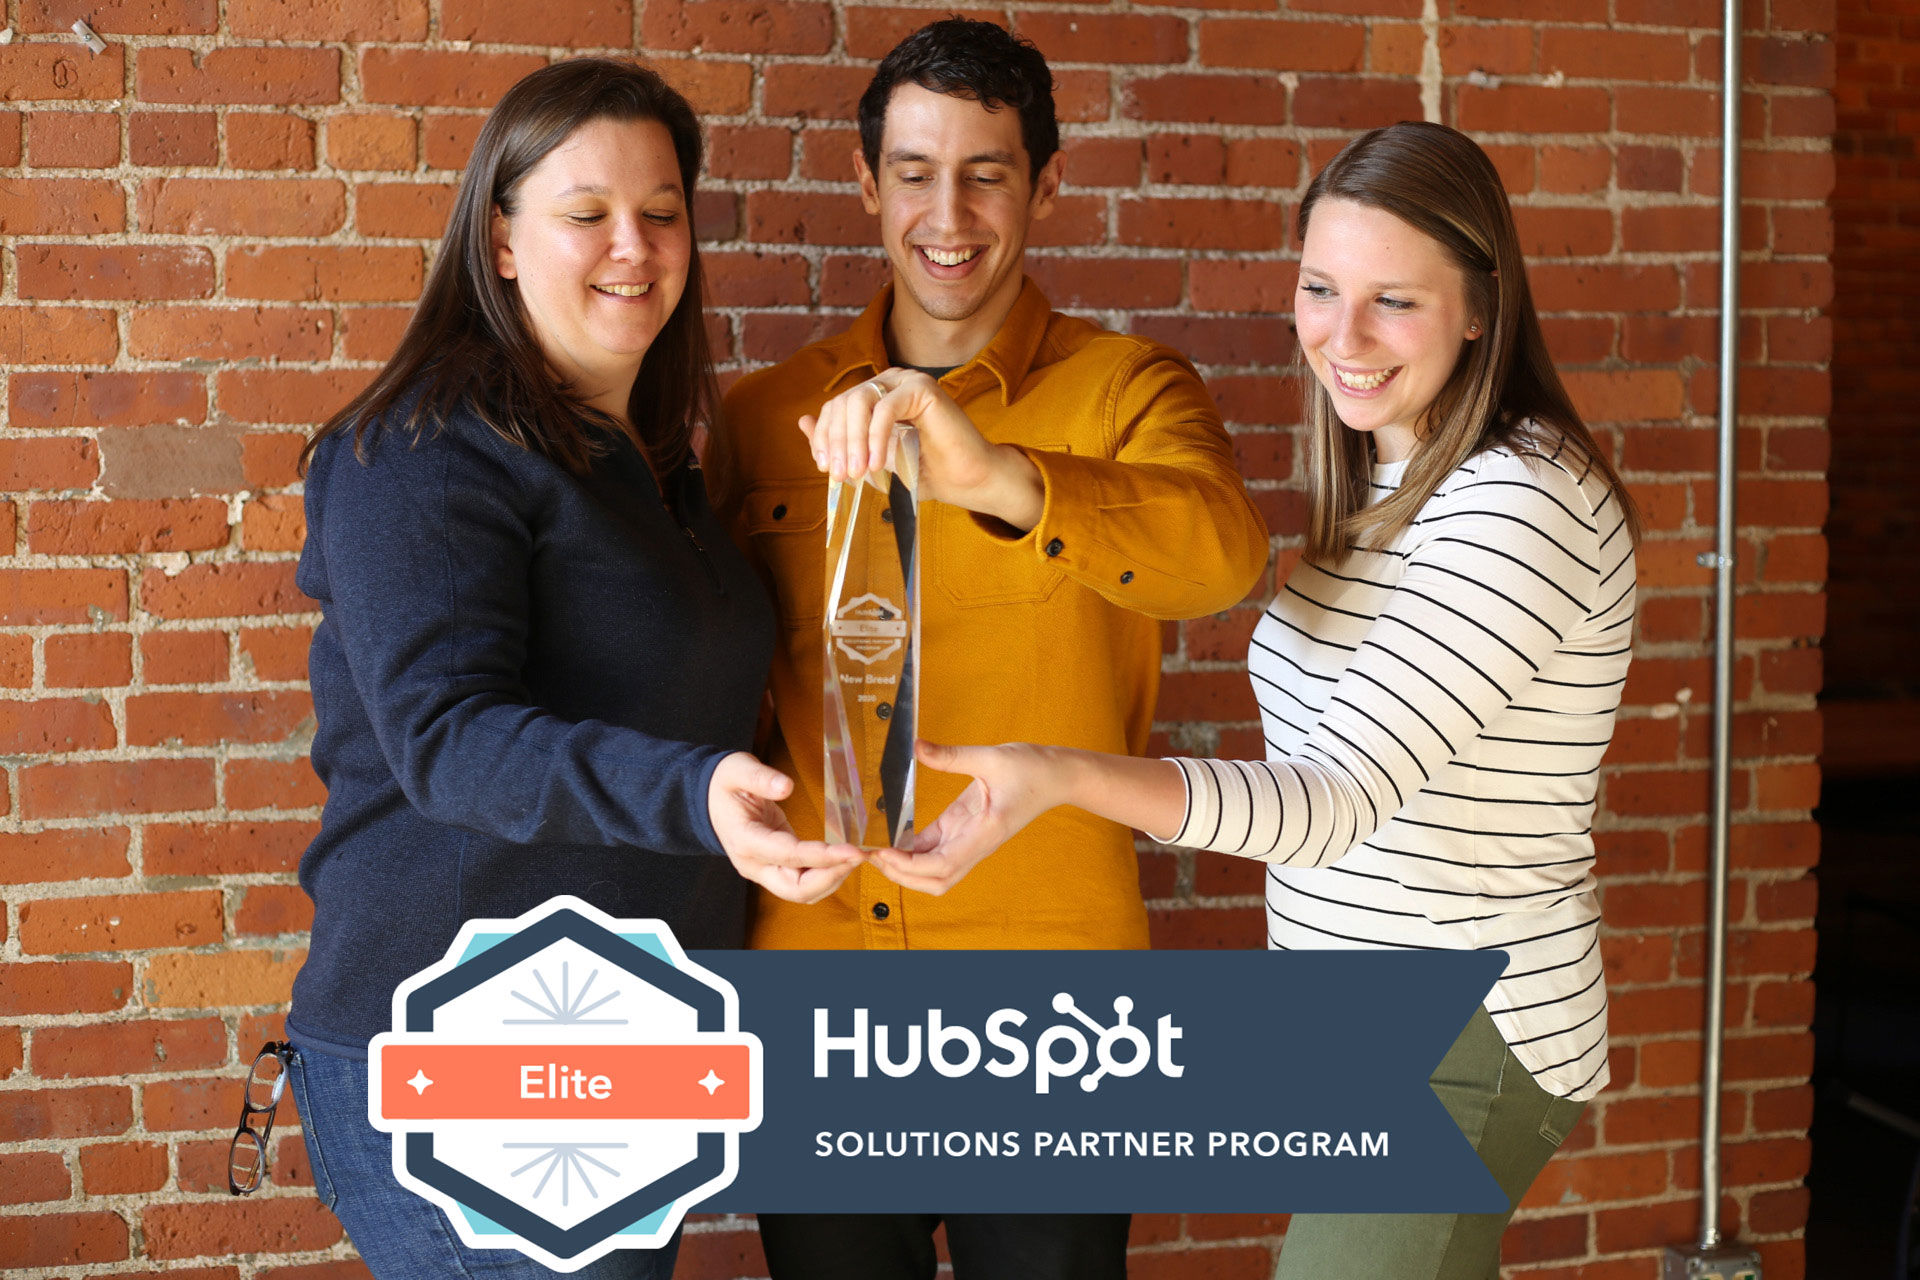 New Breed named Elite Solutions Partner by HubSpot